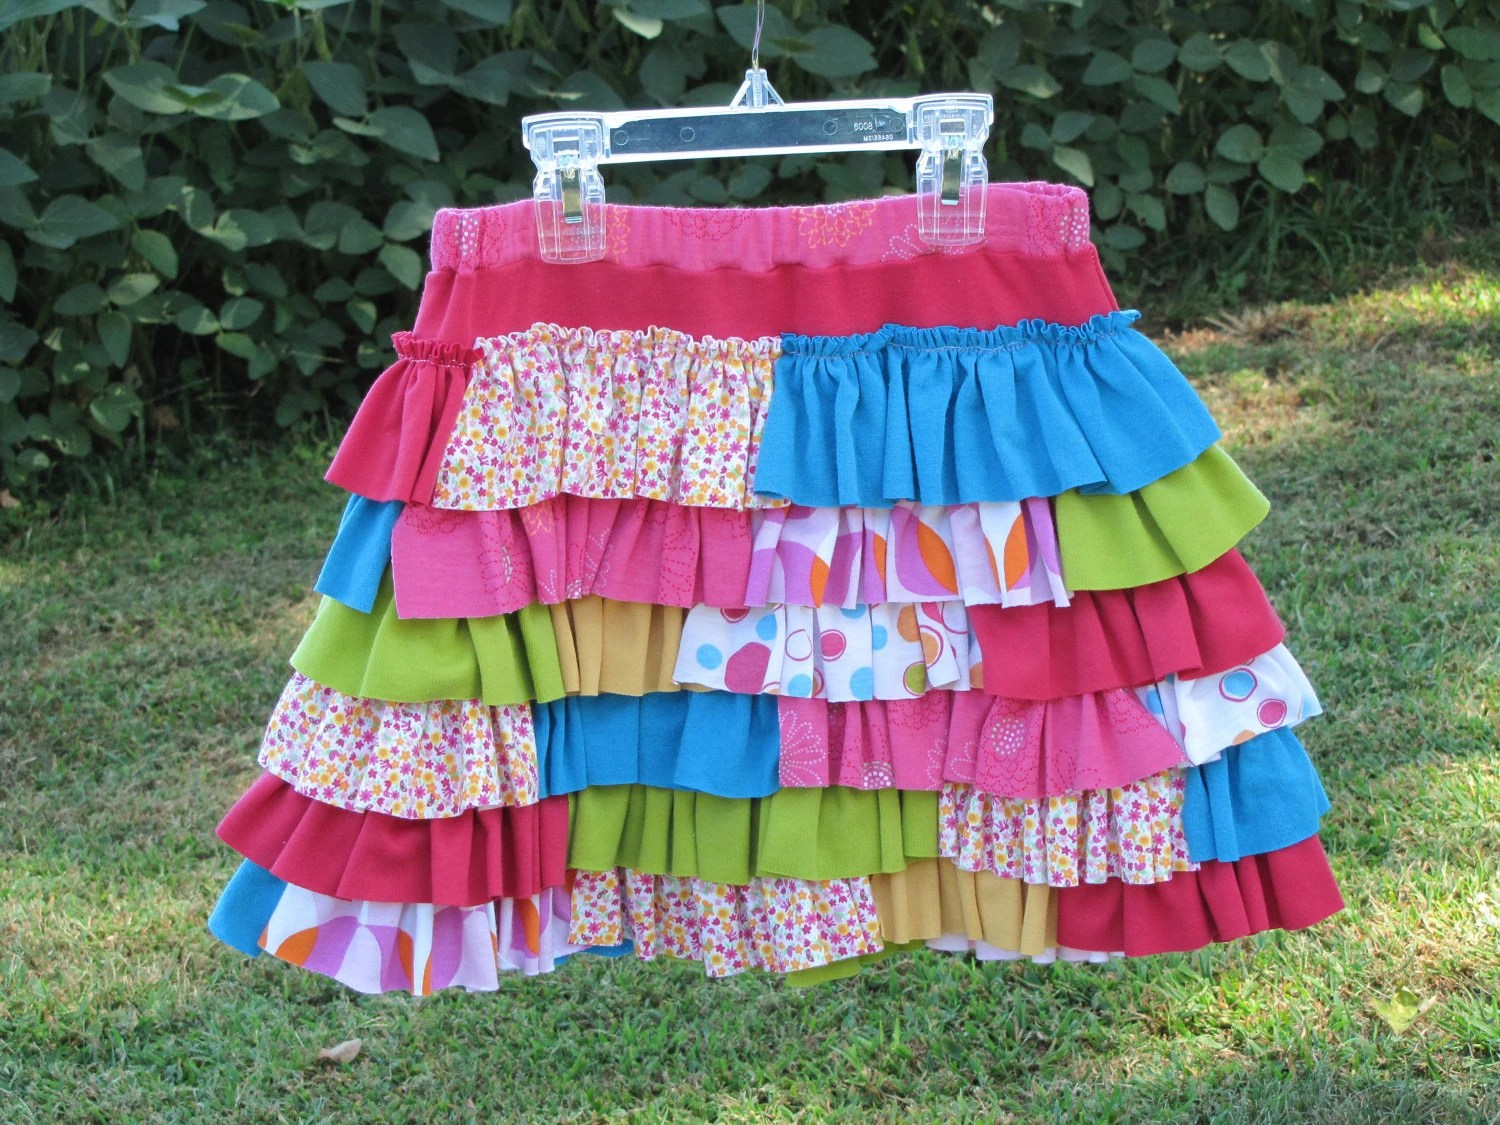 Bubble Gum Fun Ruffle Skirt - Size 8/10